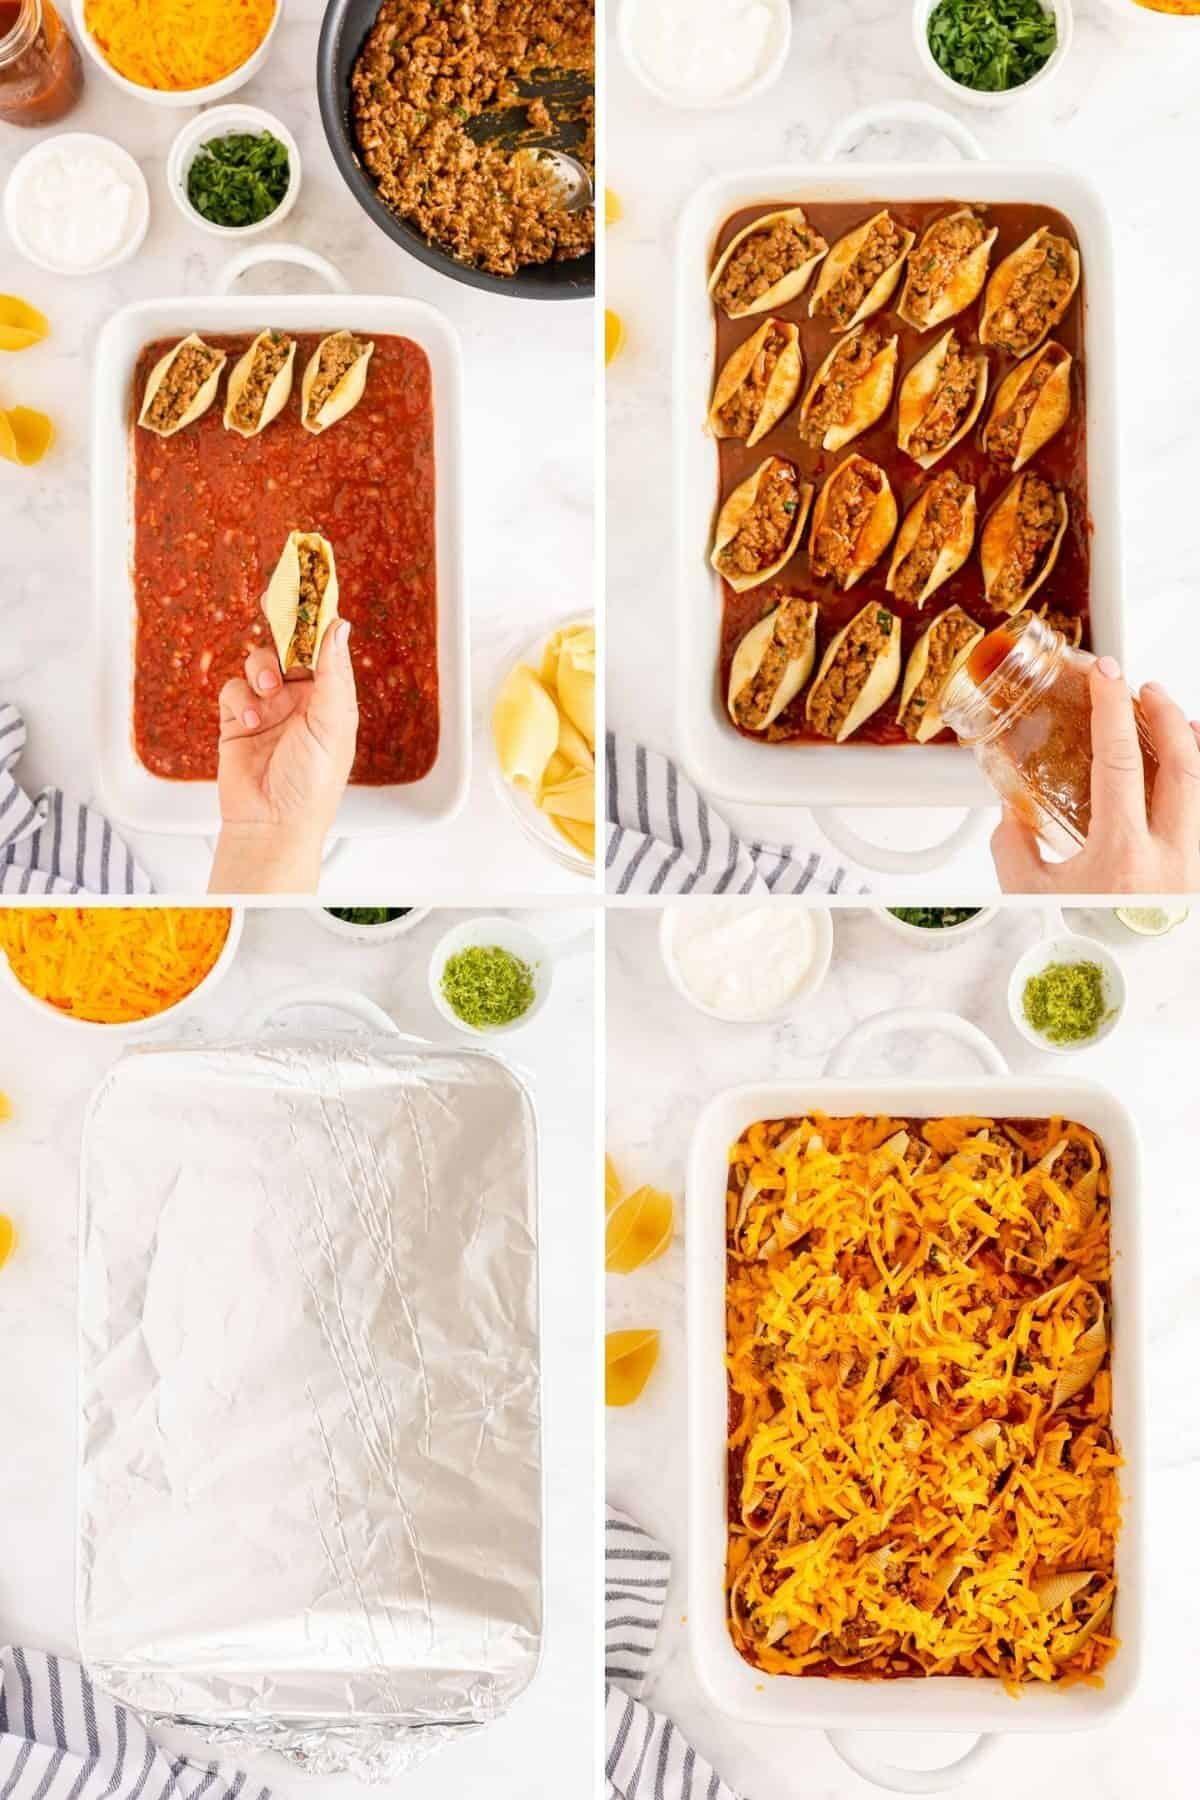 step by step showing stuffing and baking stuffed shells